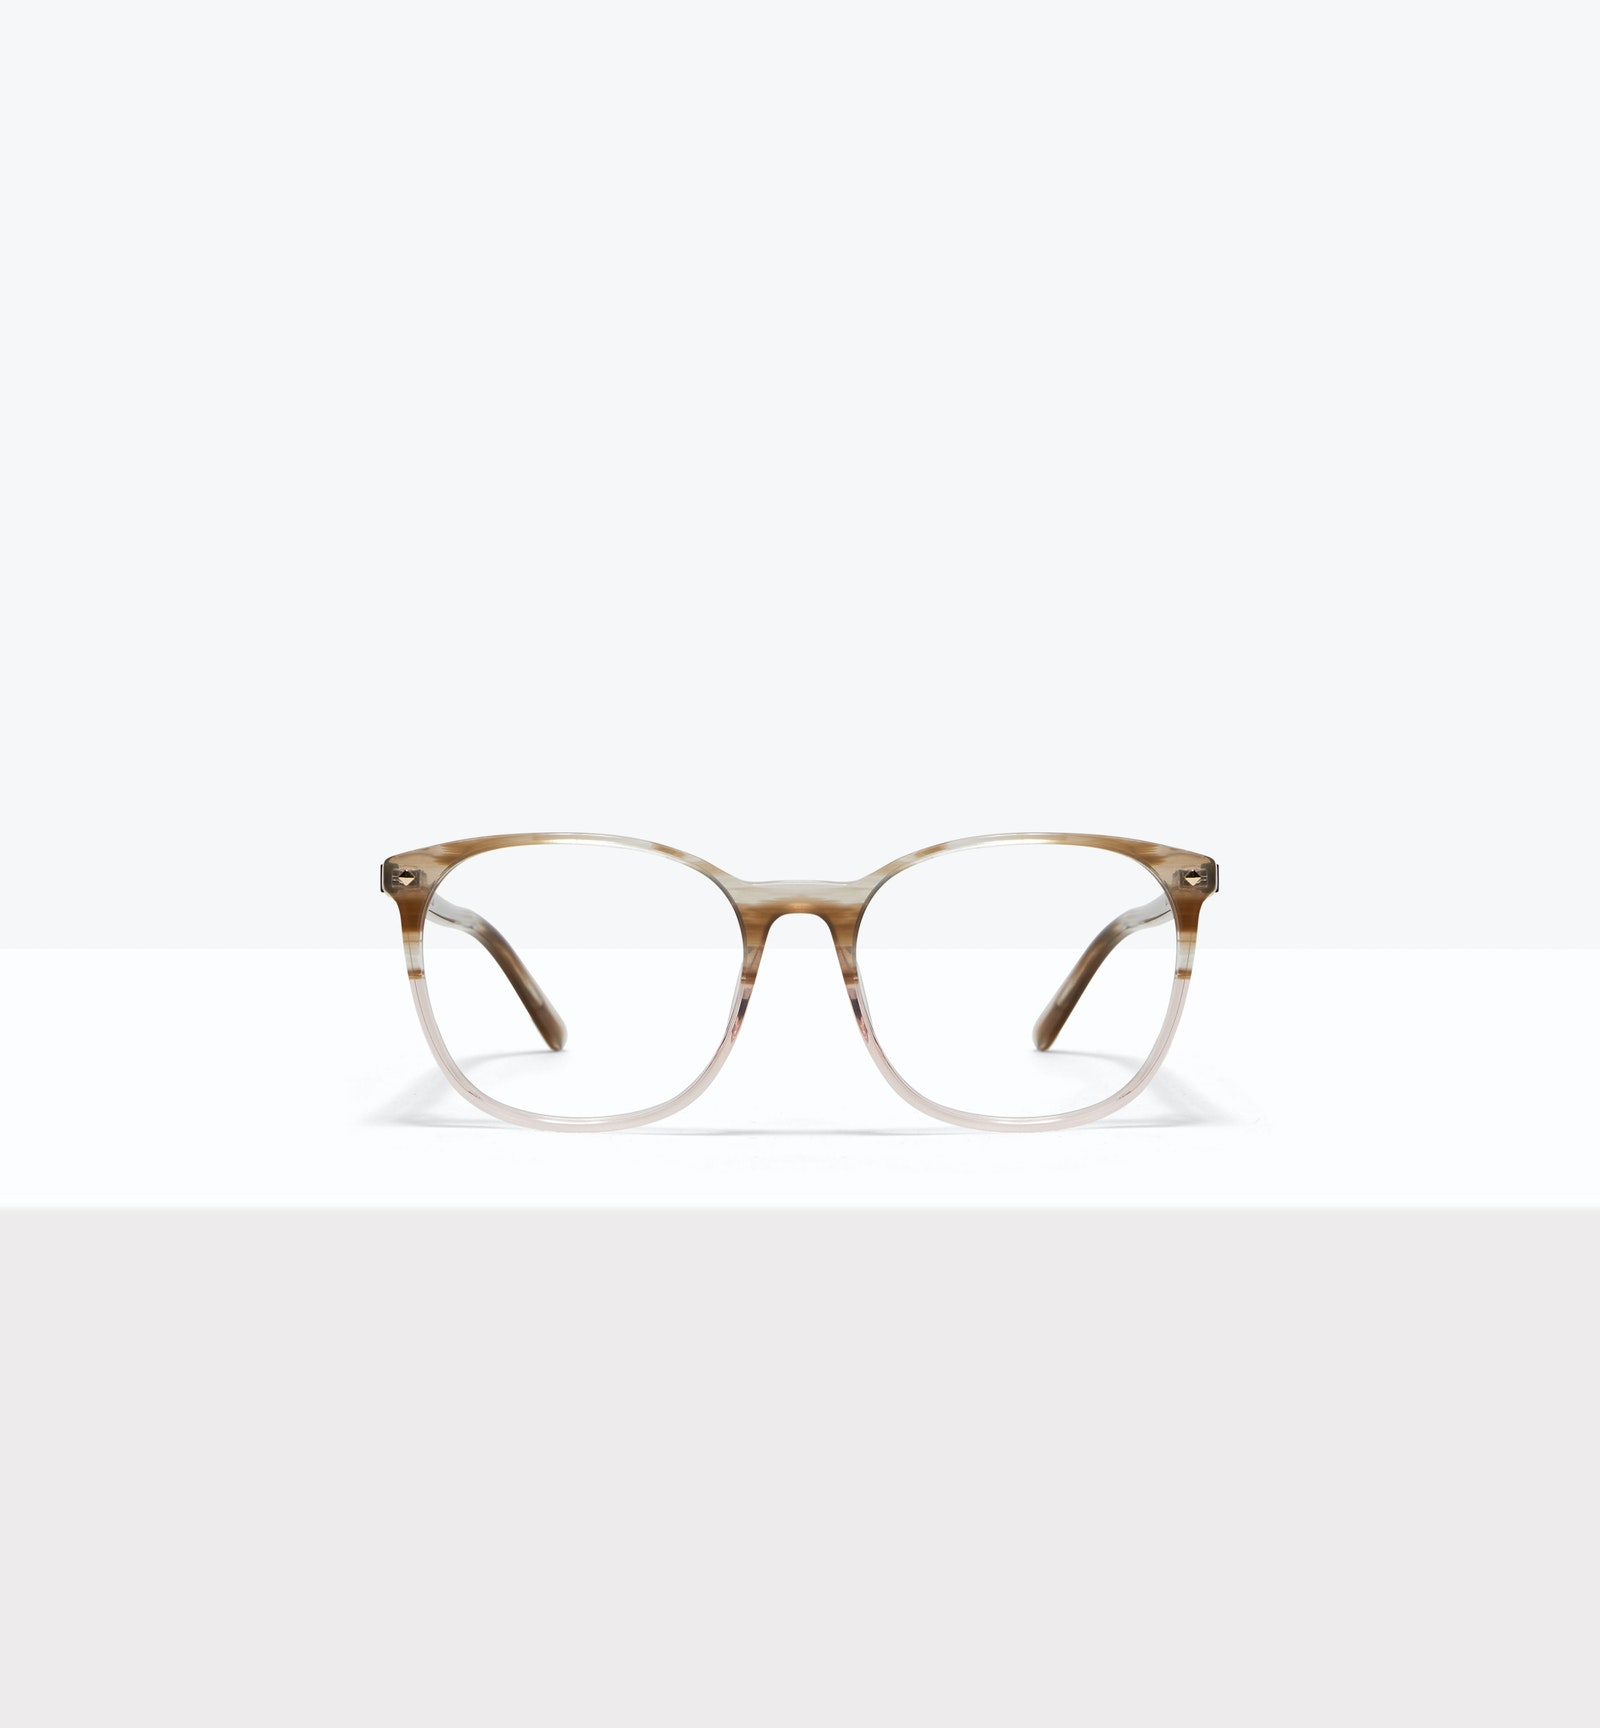 Affordable Fashion Glasses Round Eyeglasses Women Revive Rosewood